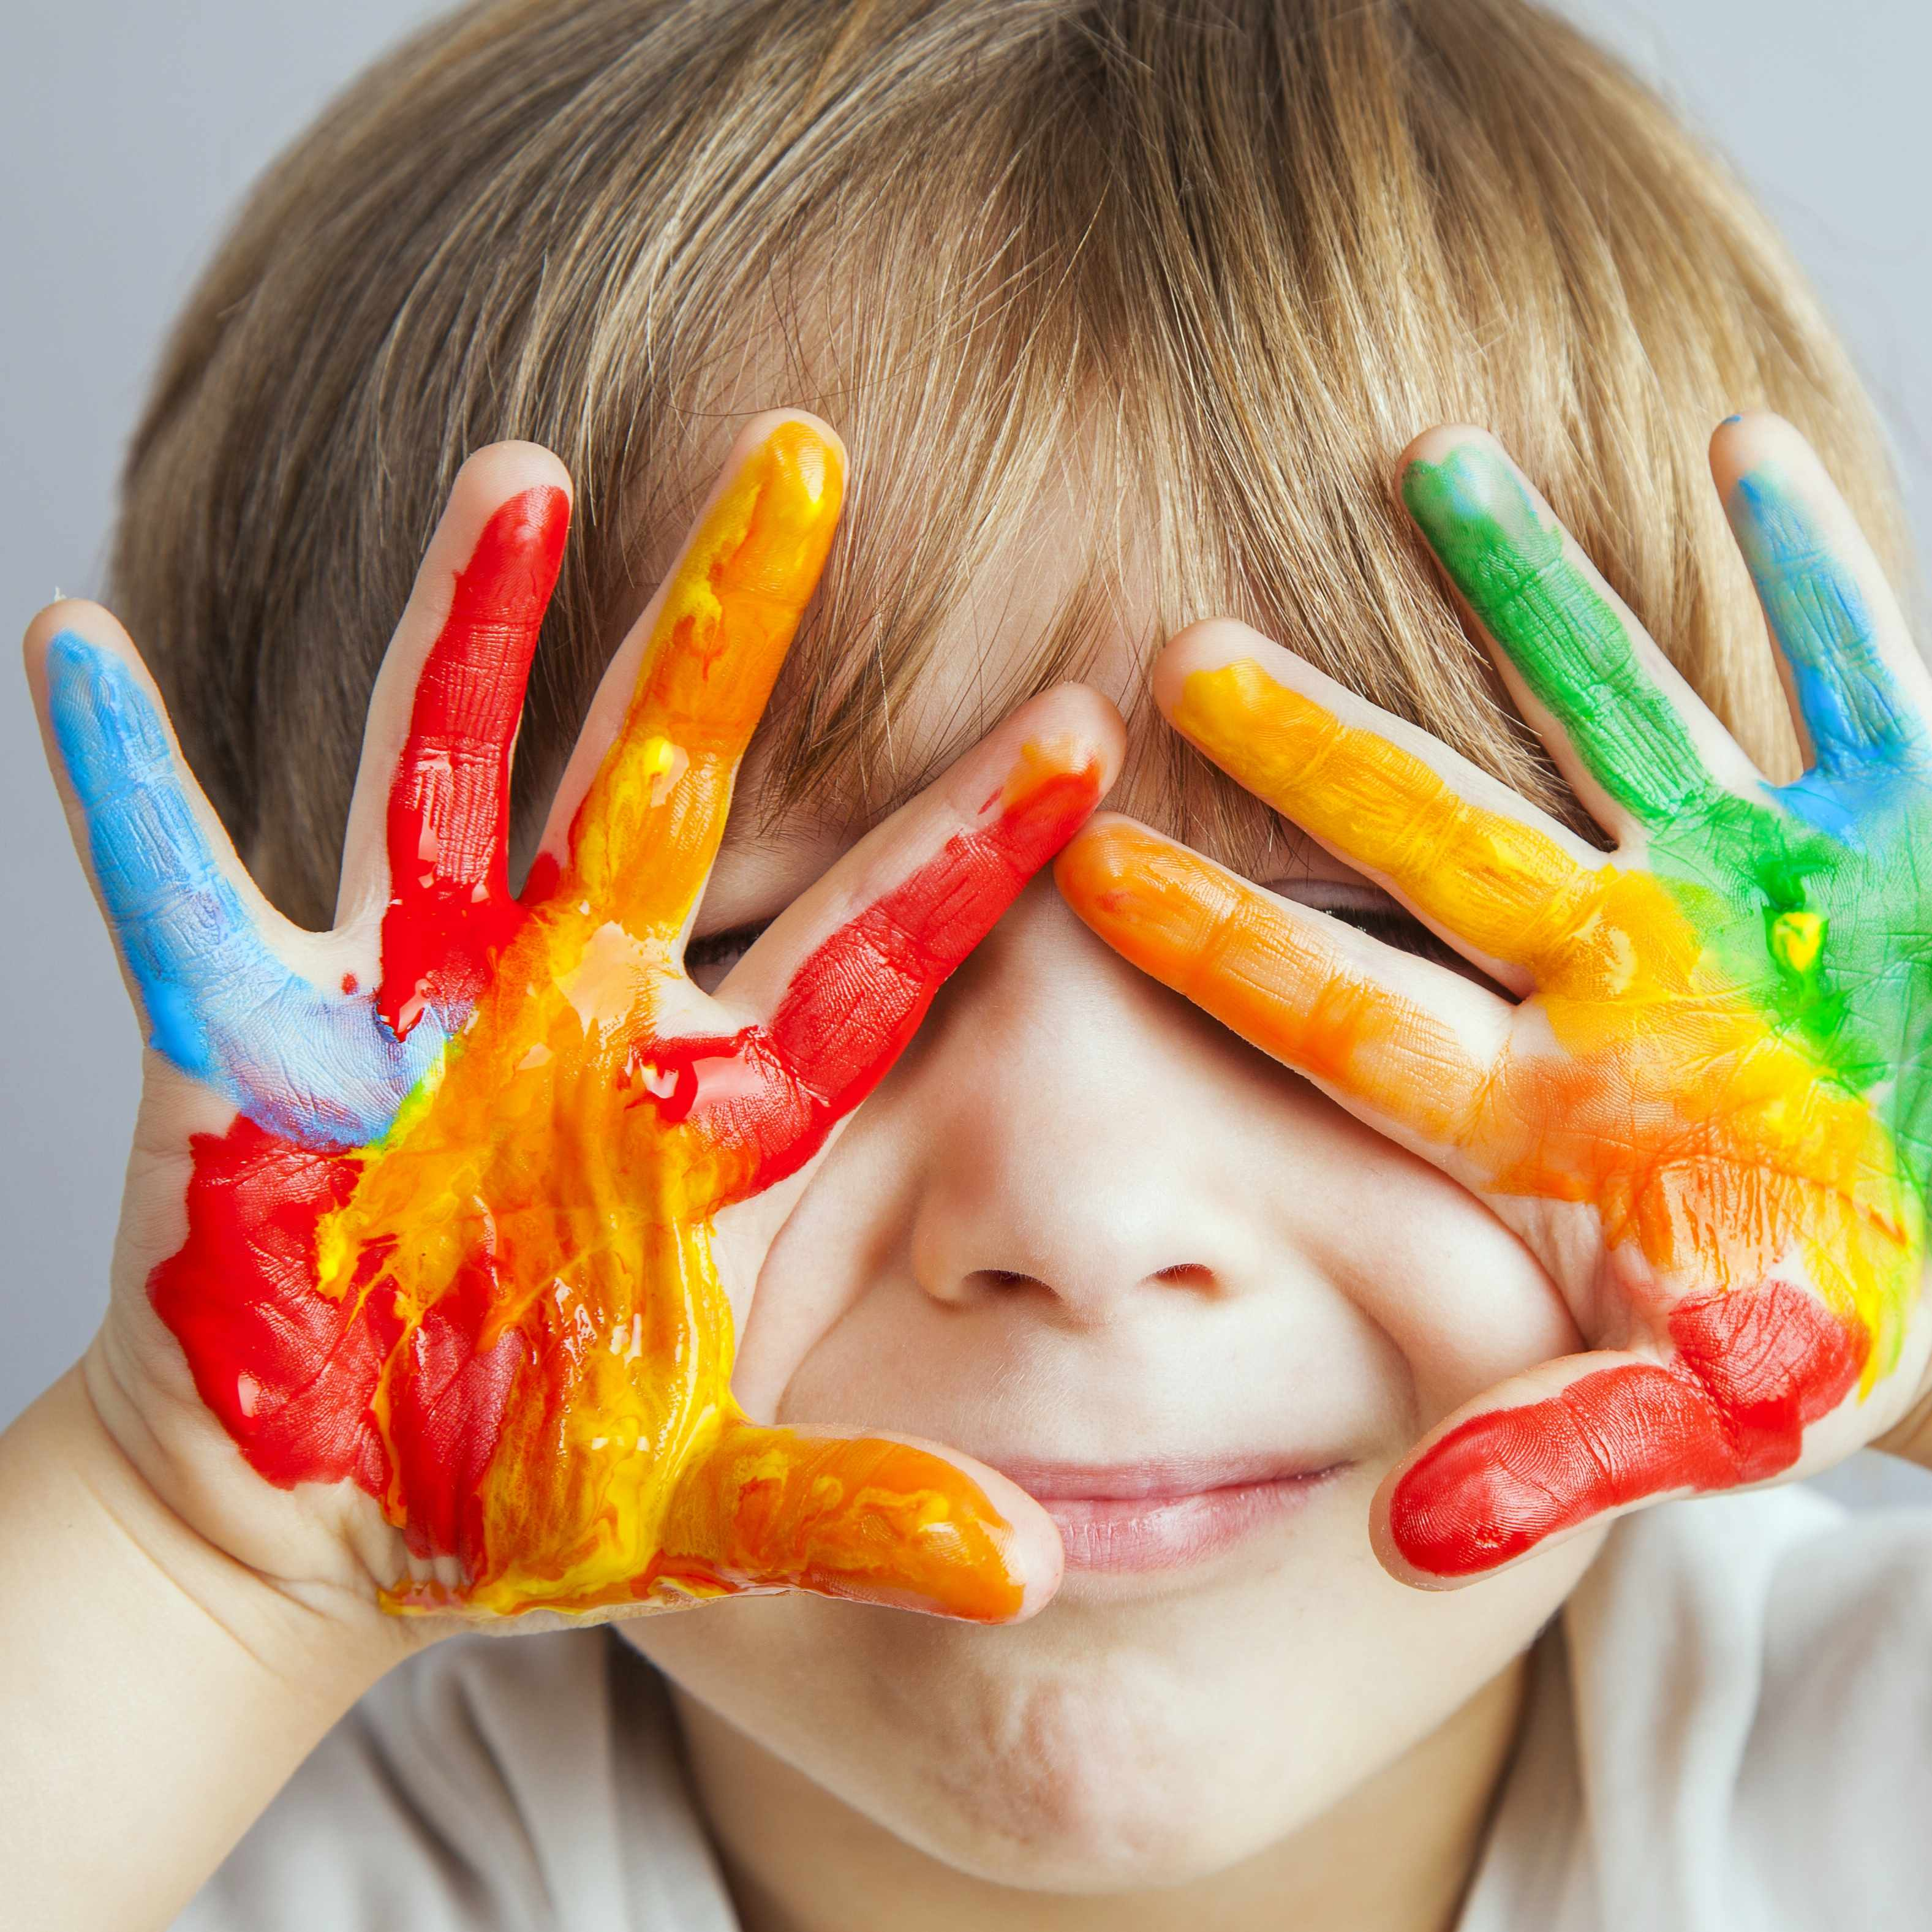 a little boy holding his messy paint covered hands over his face